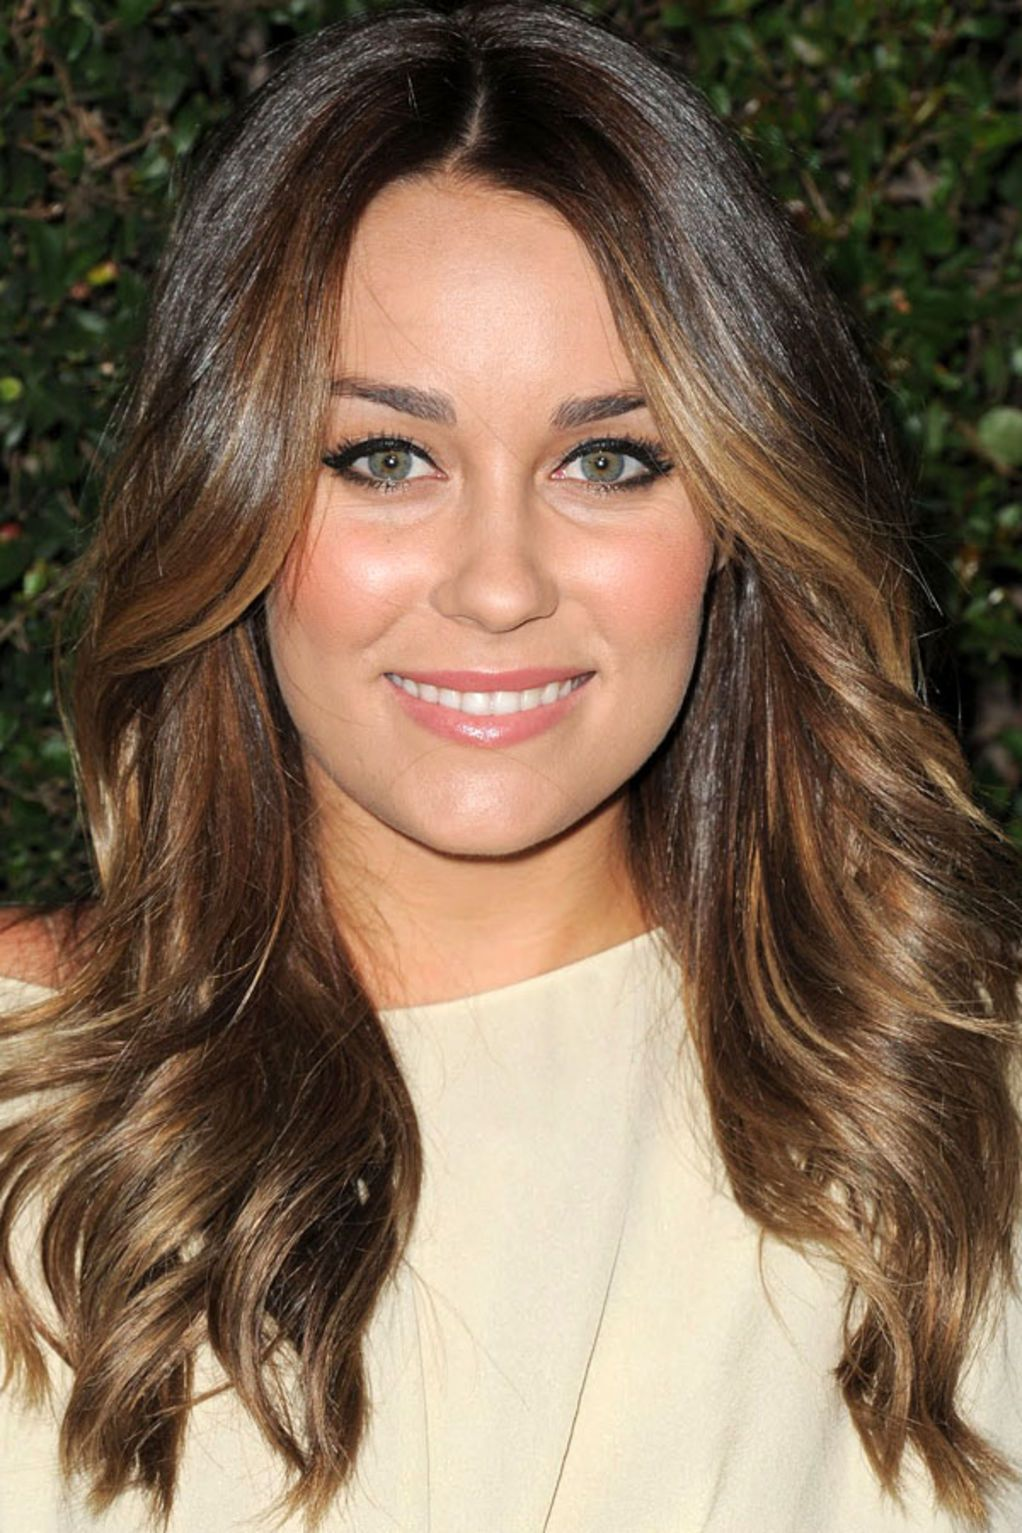 How To Add Highlights To Light Brown Hair At Home Beautyeditor